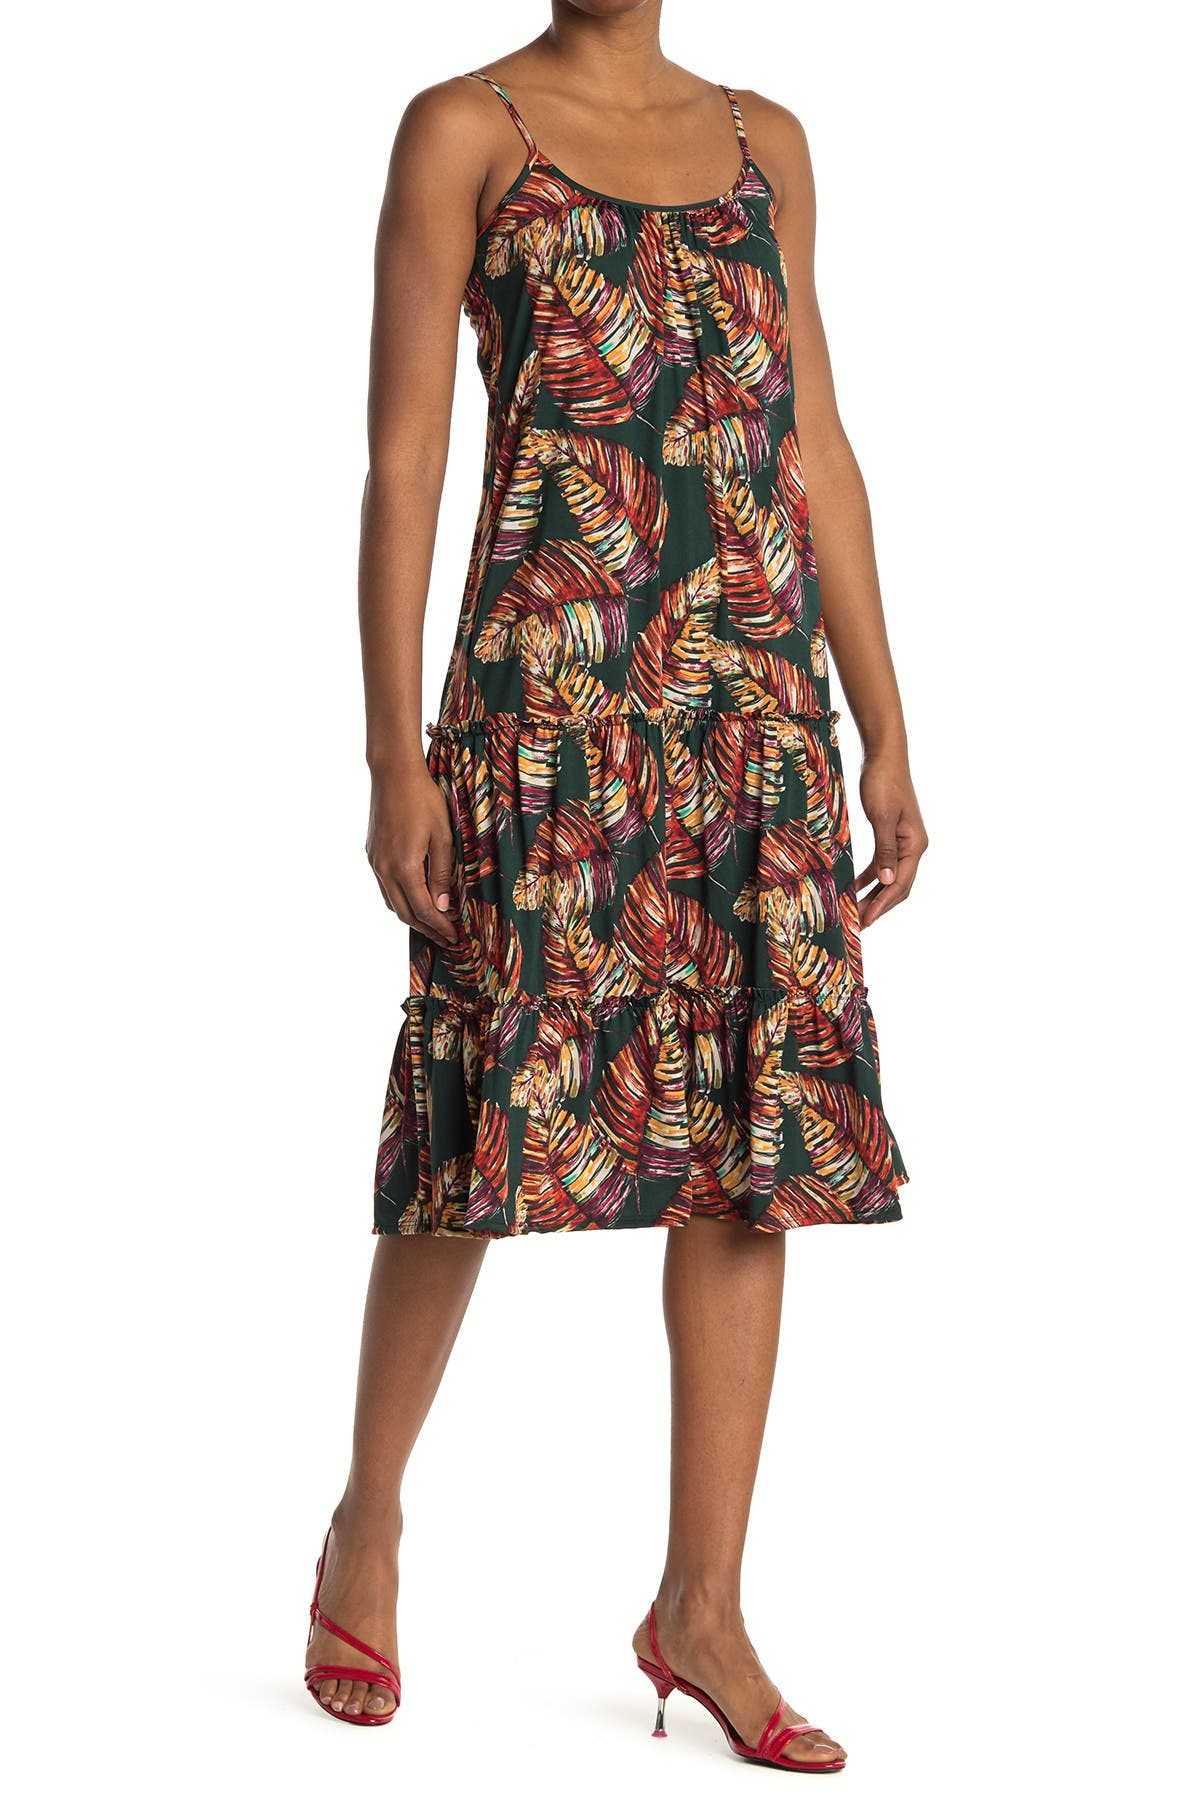 Image of Velvet Torch Floral Print Tiered Tank Dress